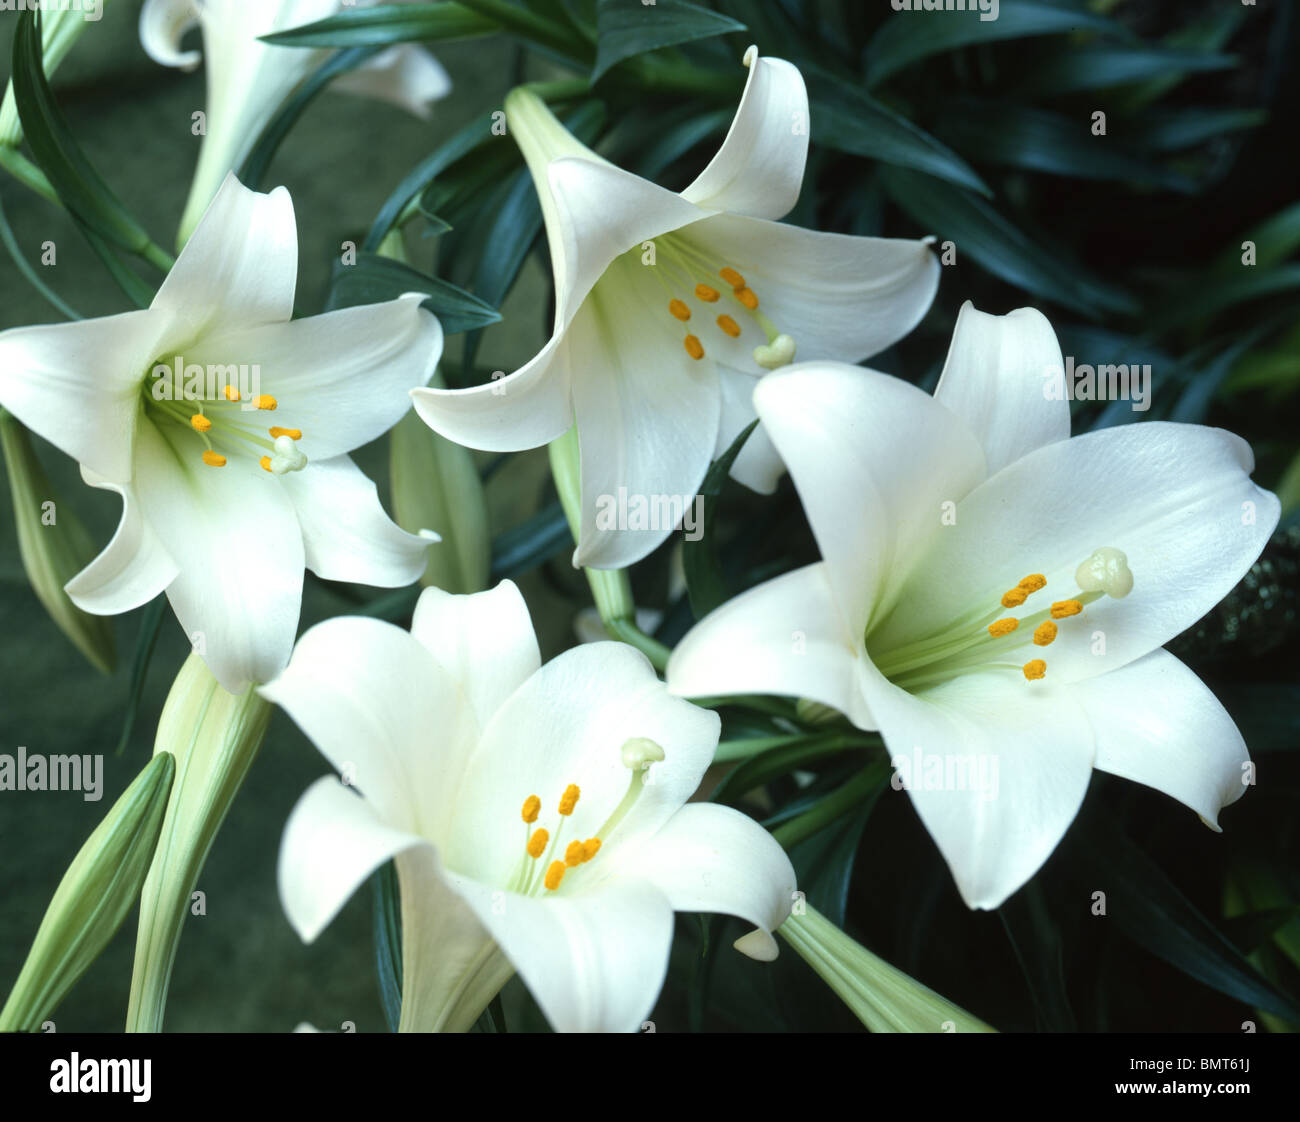 easter lillies stock photo, royalty free image   alamy, Beautiful flower